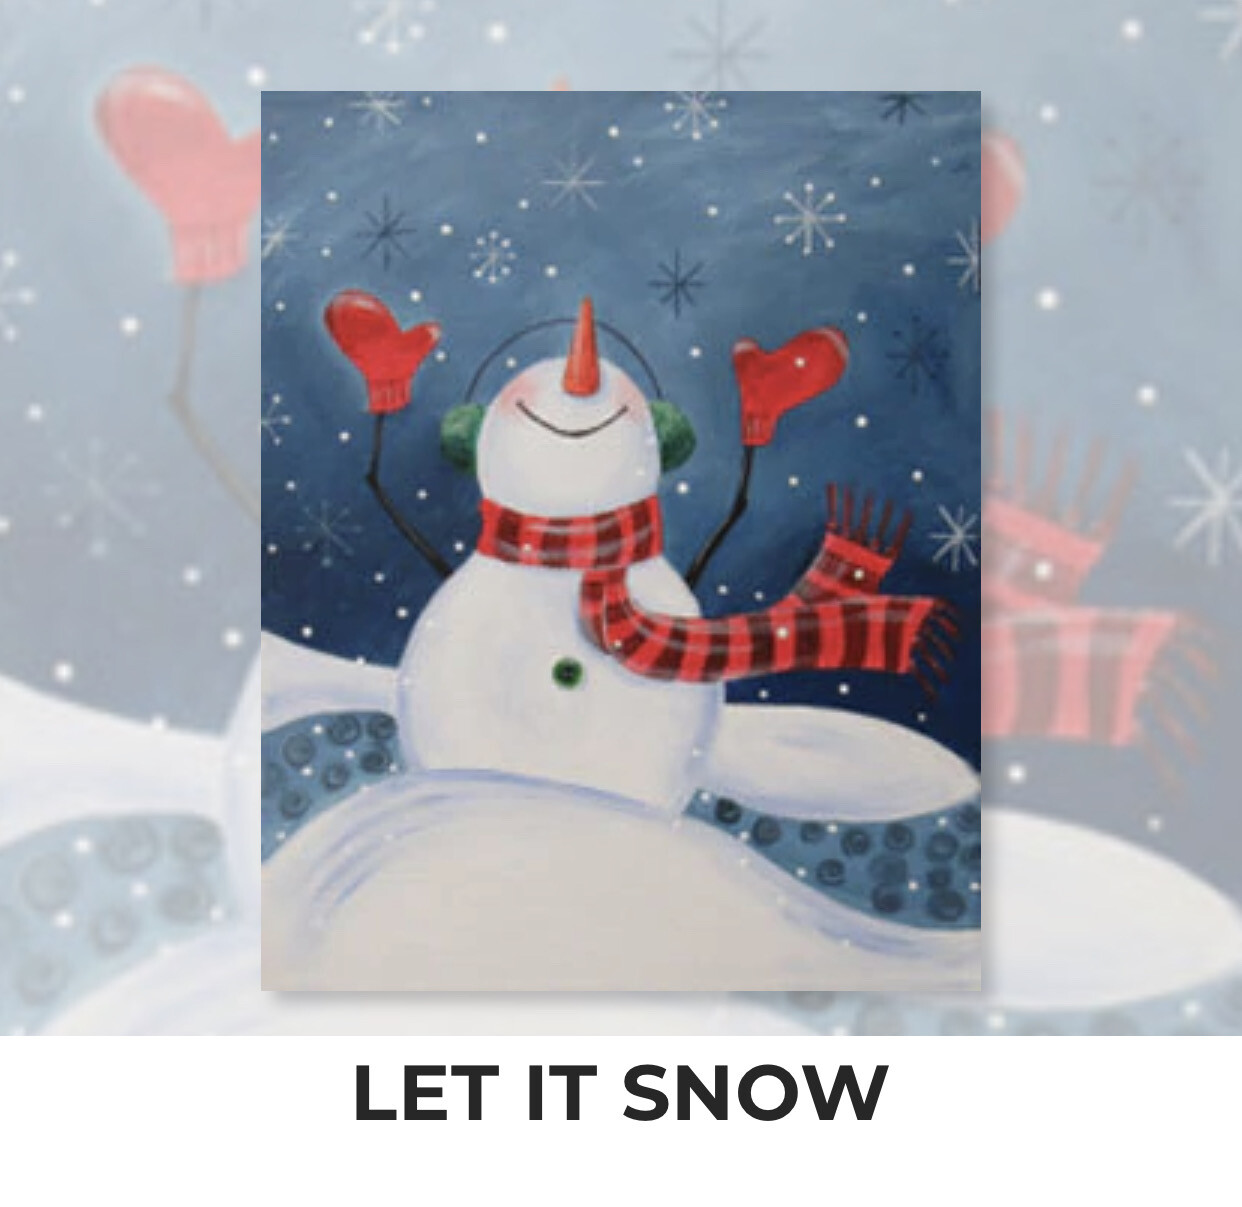 Let It Snow ADULT Acrylic Paint On Canvas DIY Art Kit - 3 Week Special Order